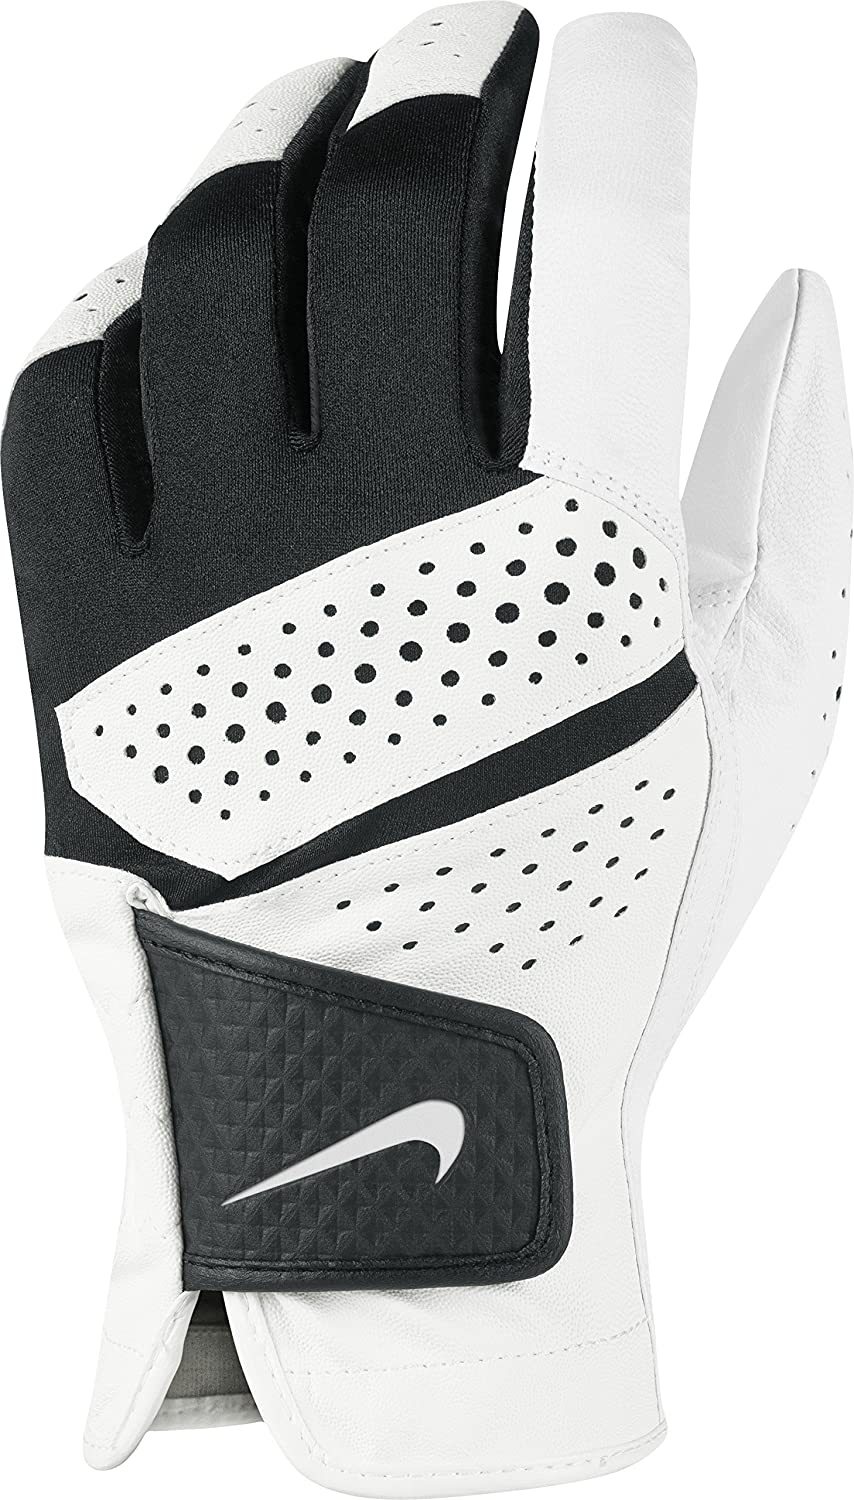 Nike 2016 Tech Extreme VI All Weather Golf Gloves Leather Palm Mens Left Hand